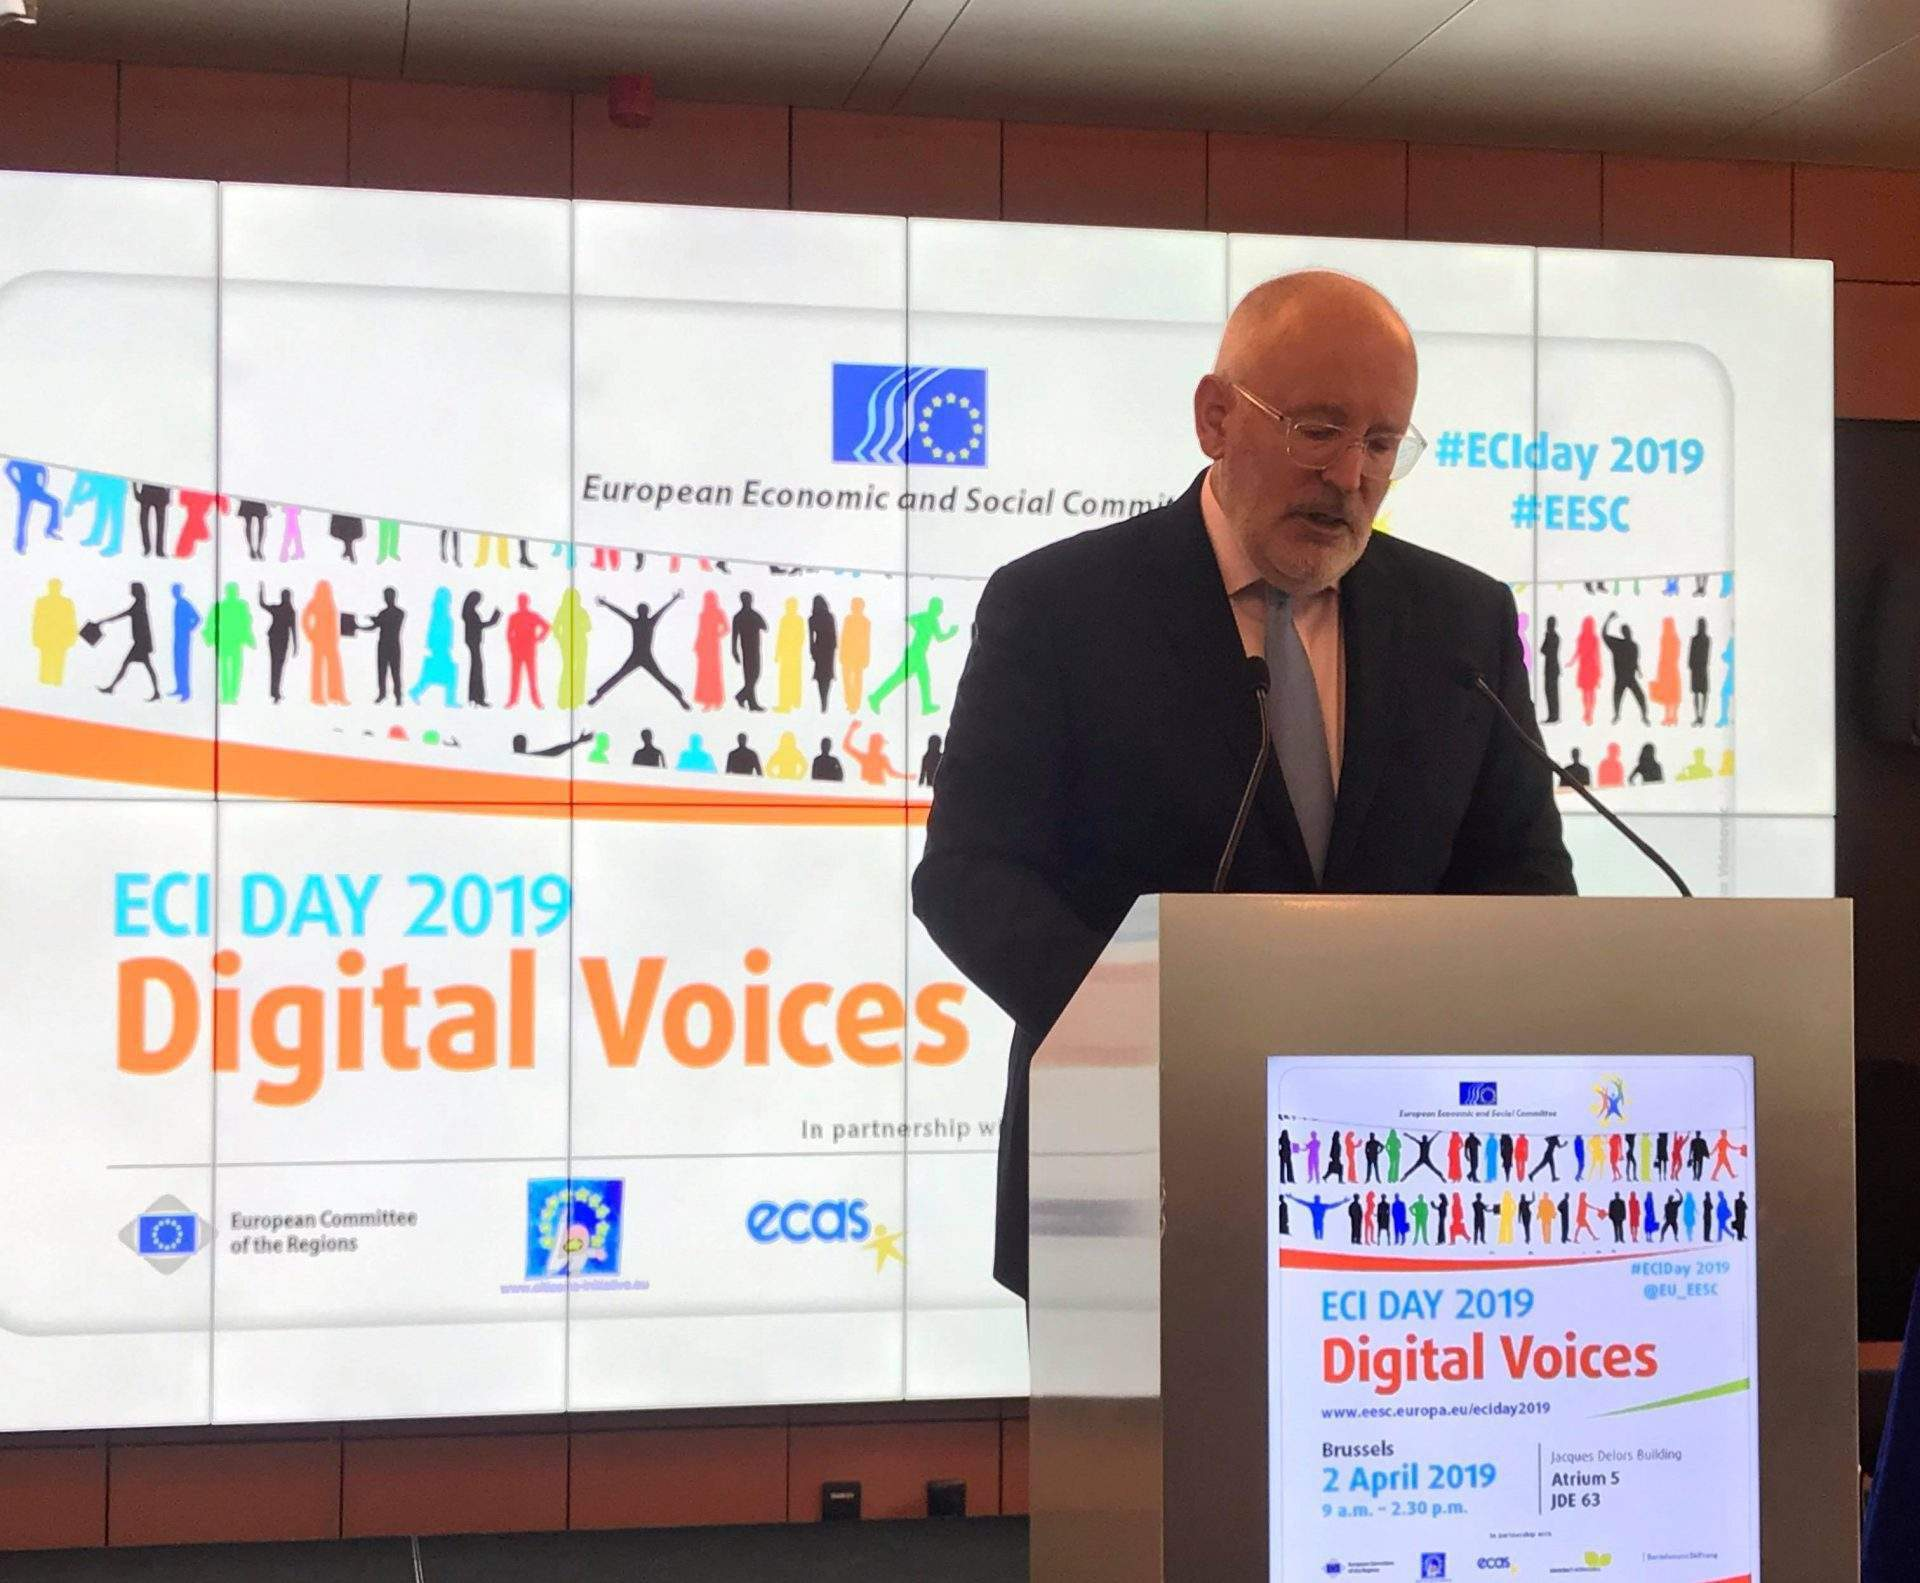 Marking Of ECI Day 2019: Digital Voices